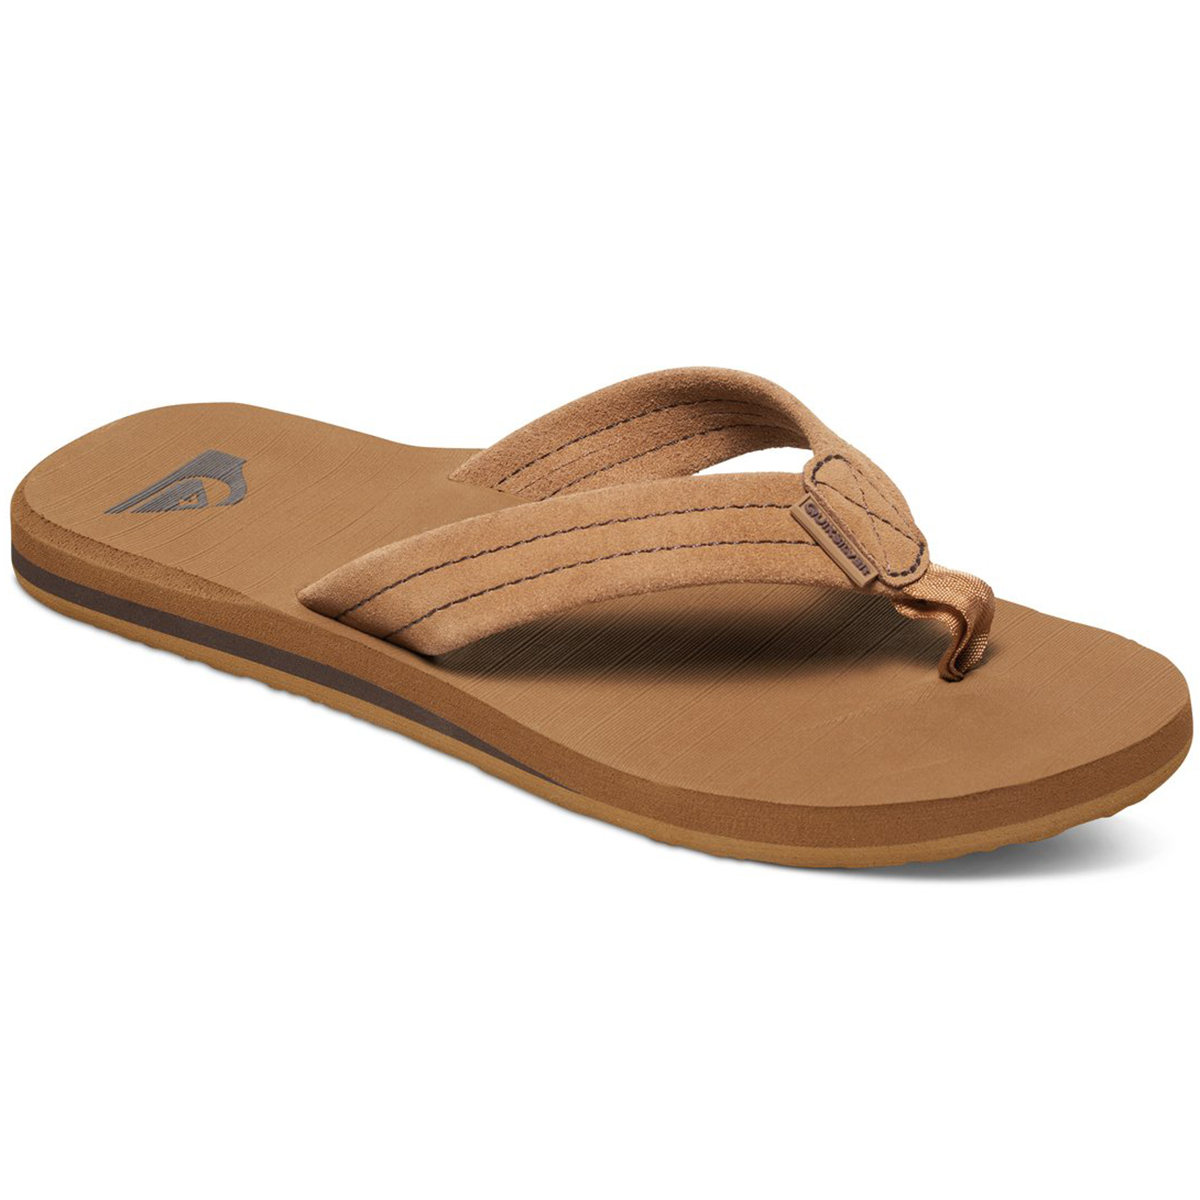 Quiksilver Men's Carver Suede Sandals - Brown, 13